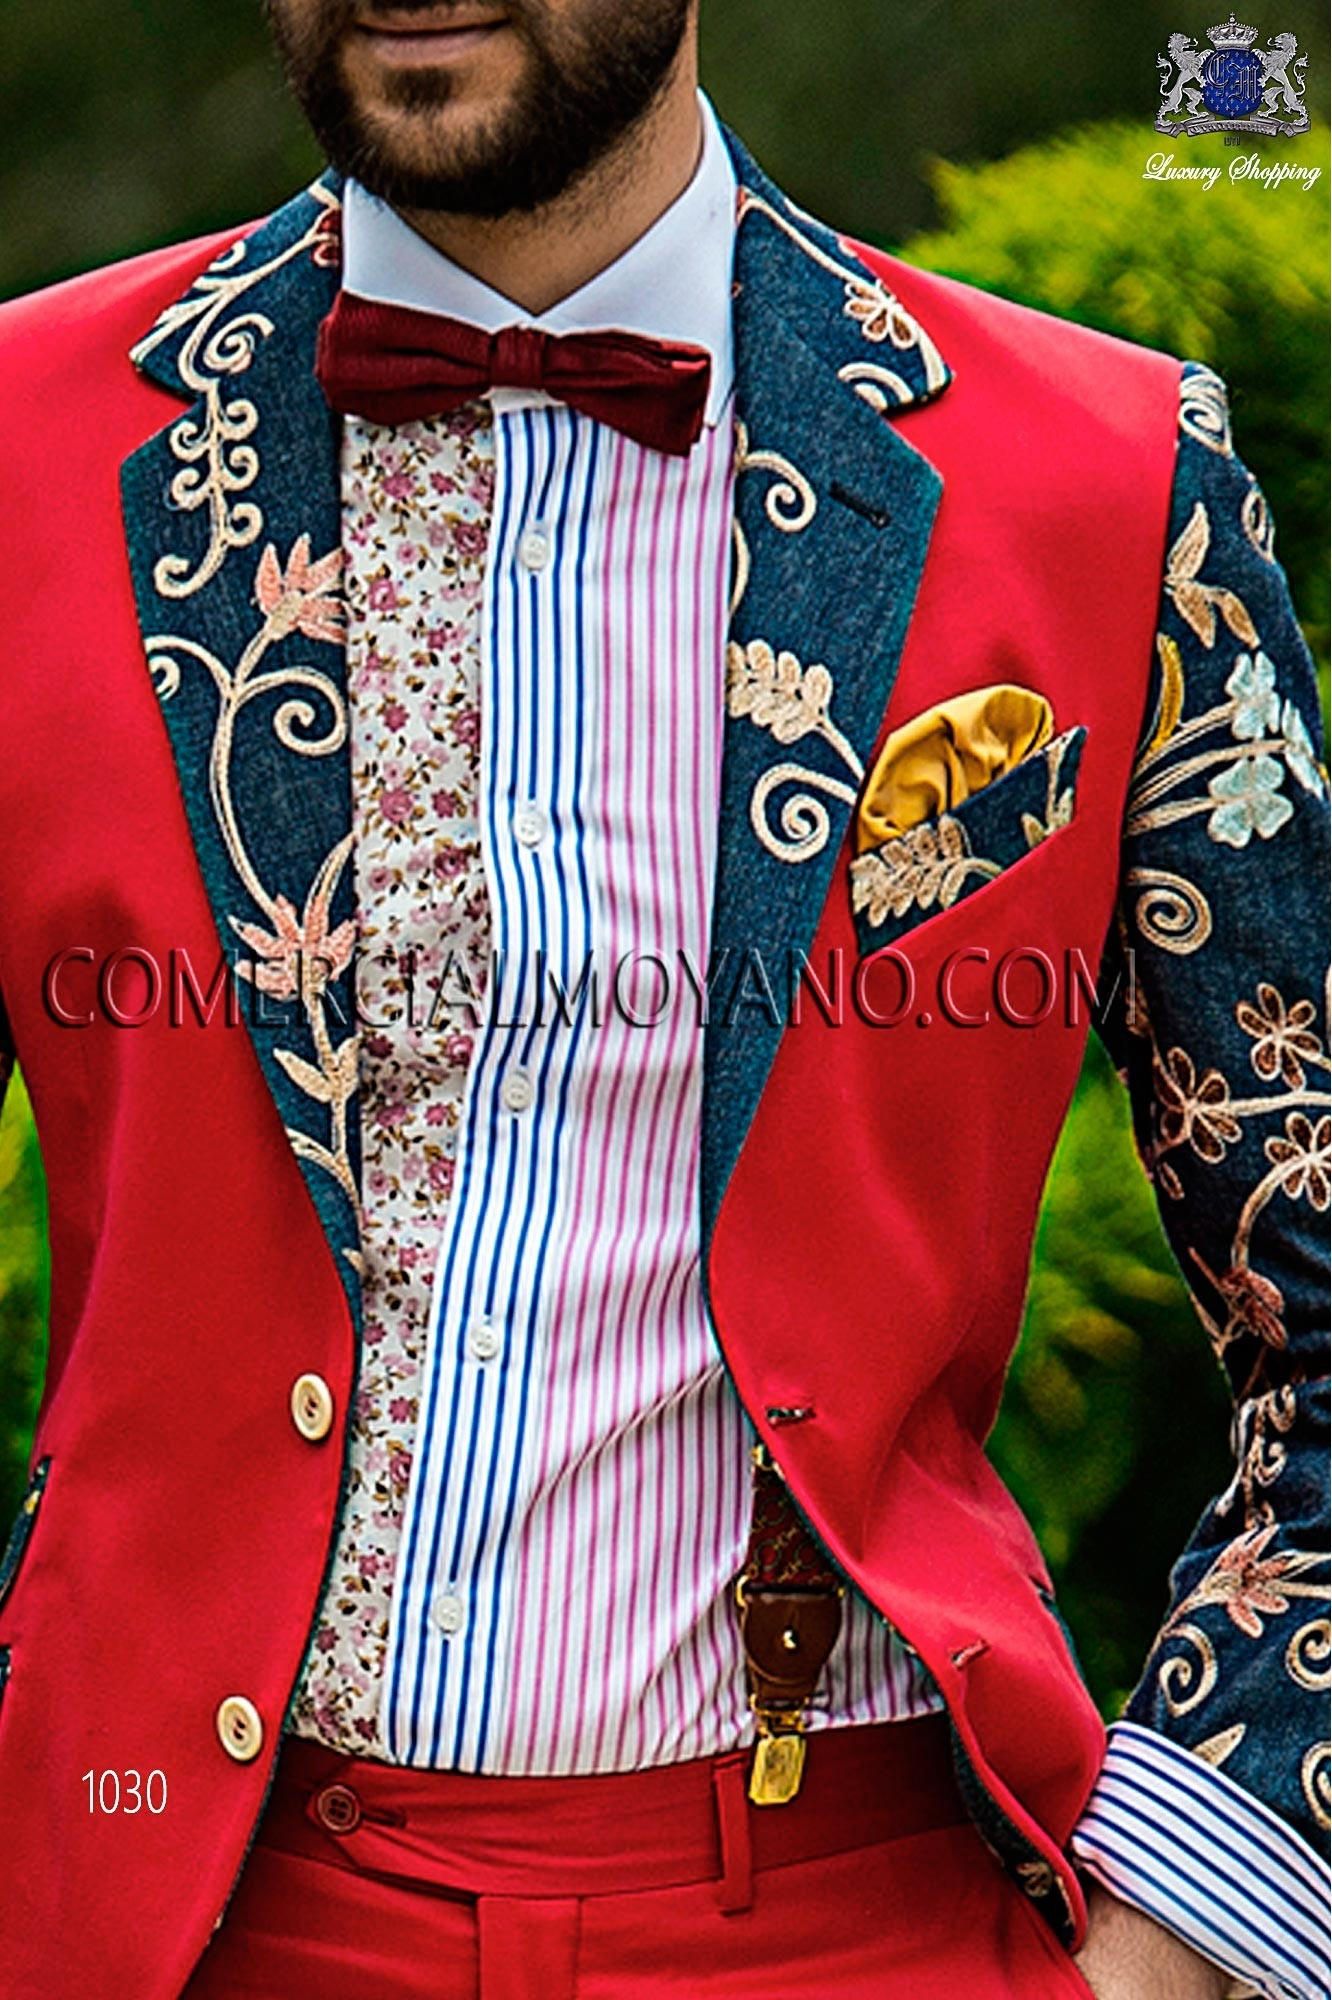 Italian hipster red/blue men wedding suit, model: 1030 Ottavio Nuccio Gala Hipster Collection